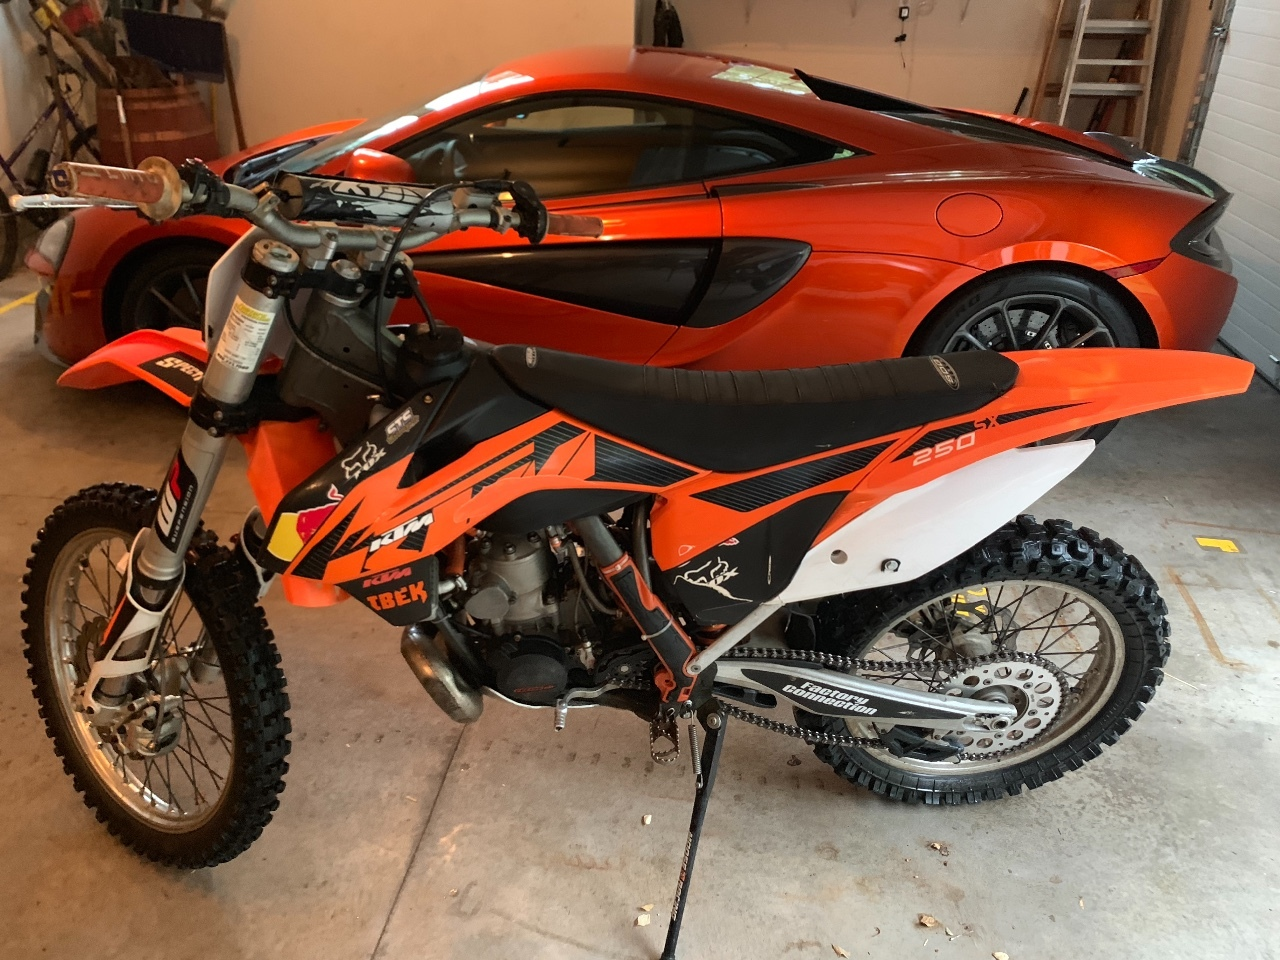 Used 2007 Dirt Bike Motorcycles For Sale - Cycle Trader